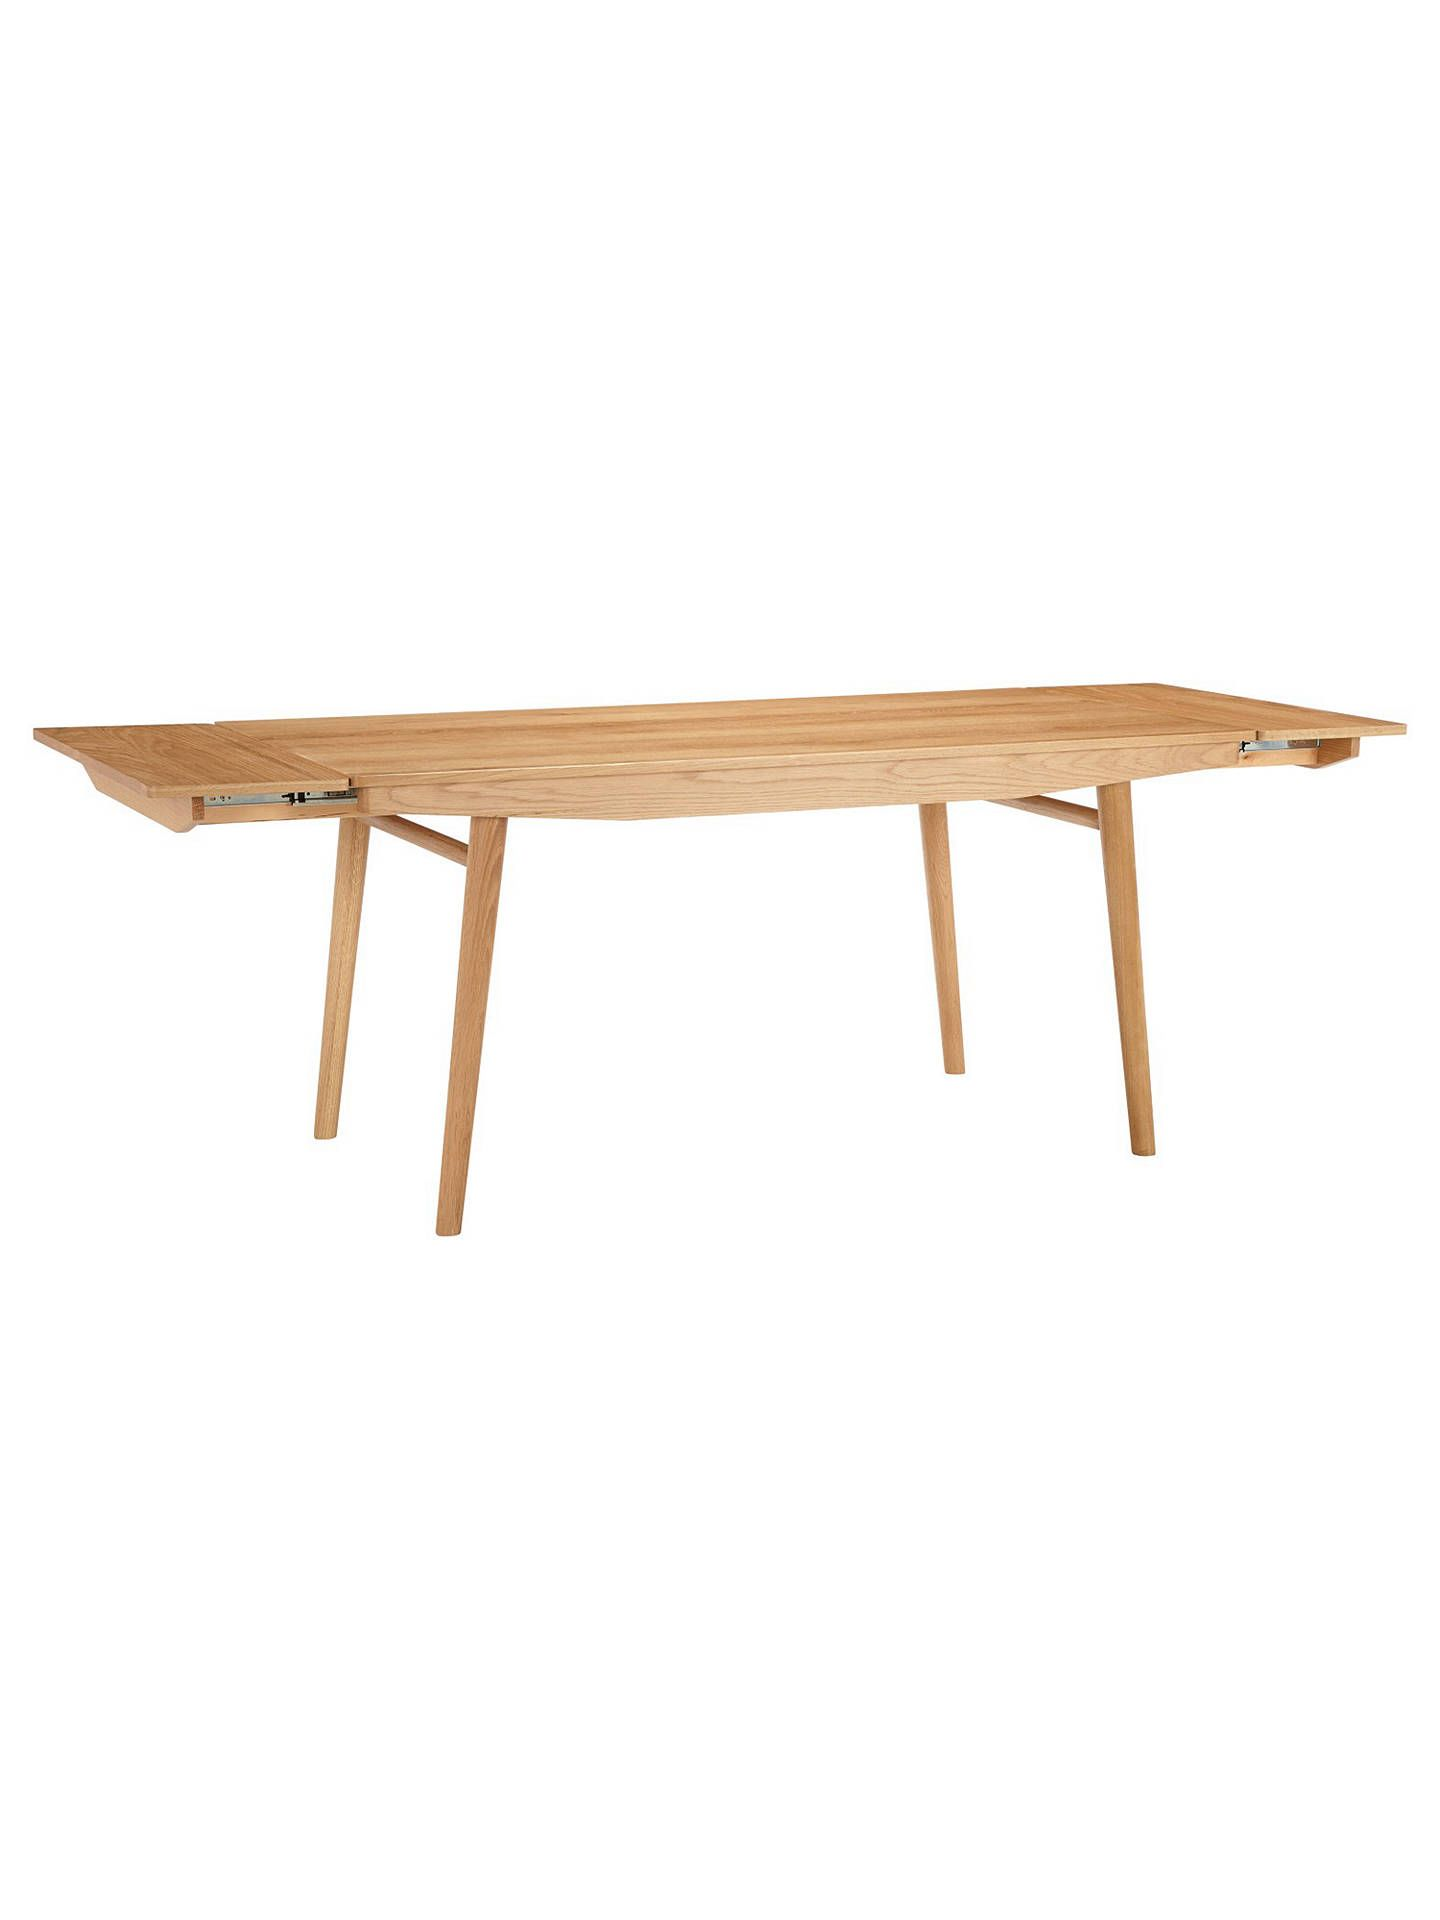 House By John Lewis Bow 6 8 Seater Extending Dining Table Extendable Dining Table Dining Table House By John Lewis